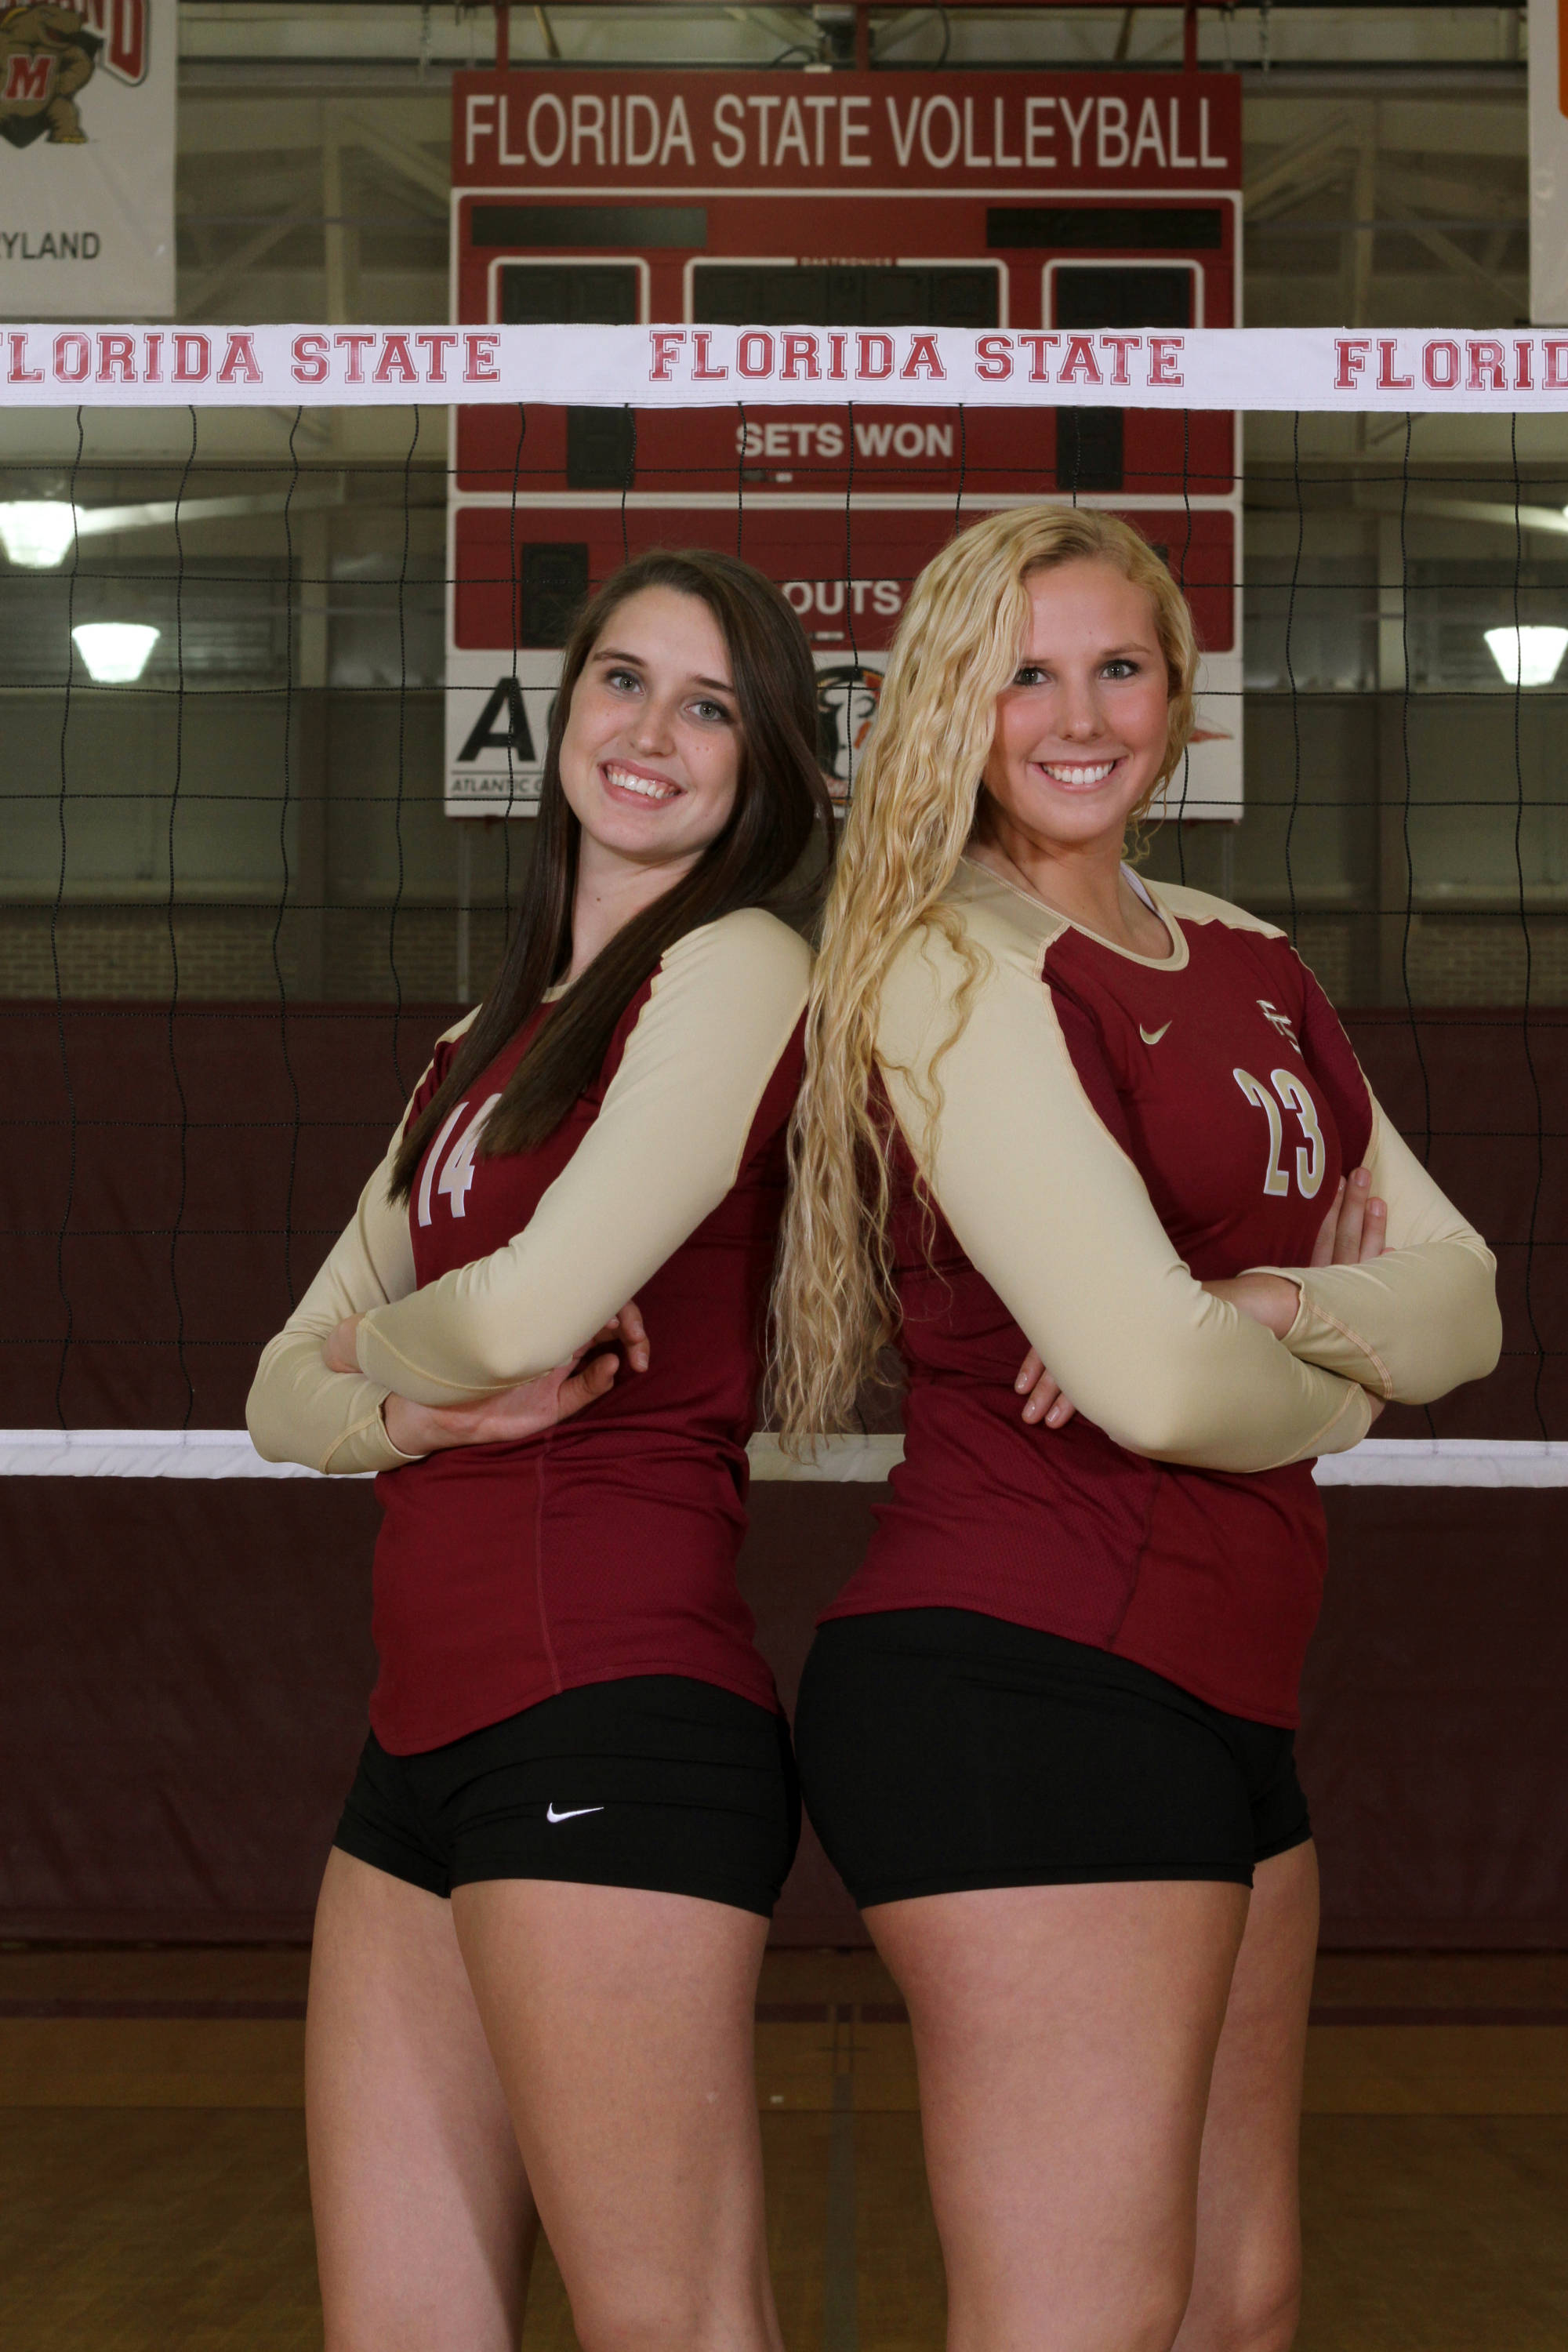 Sophomores Ashley Neff and Elise Walch are prepared to take on all challengers